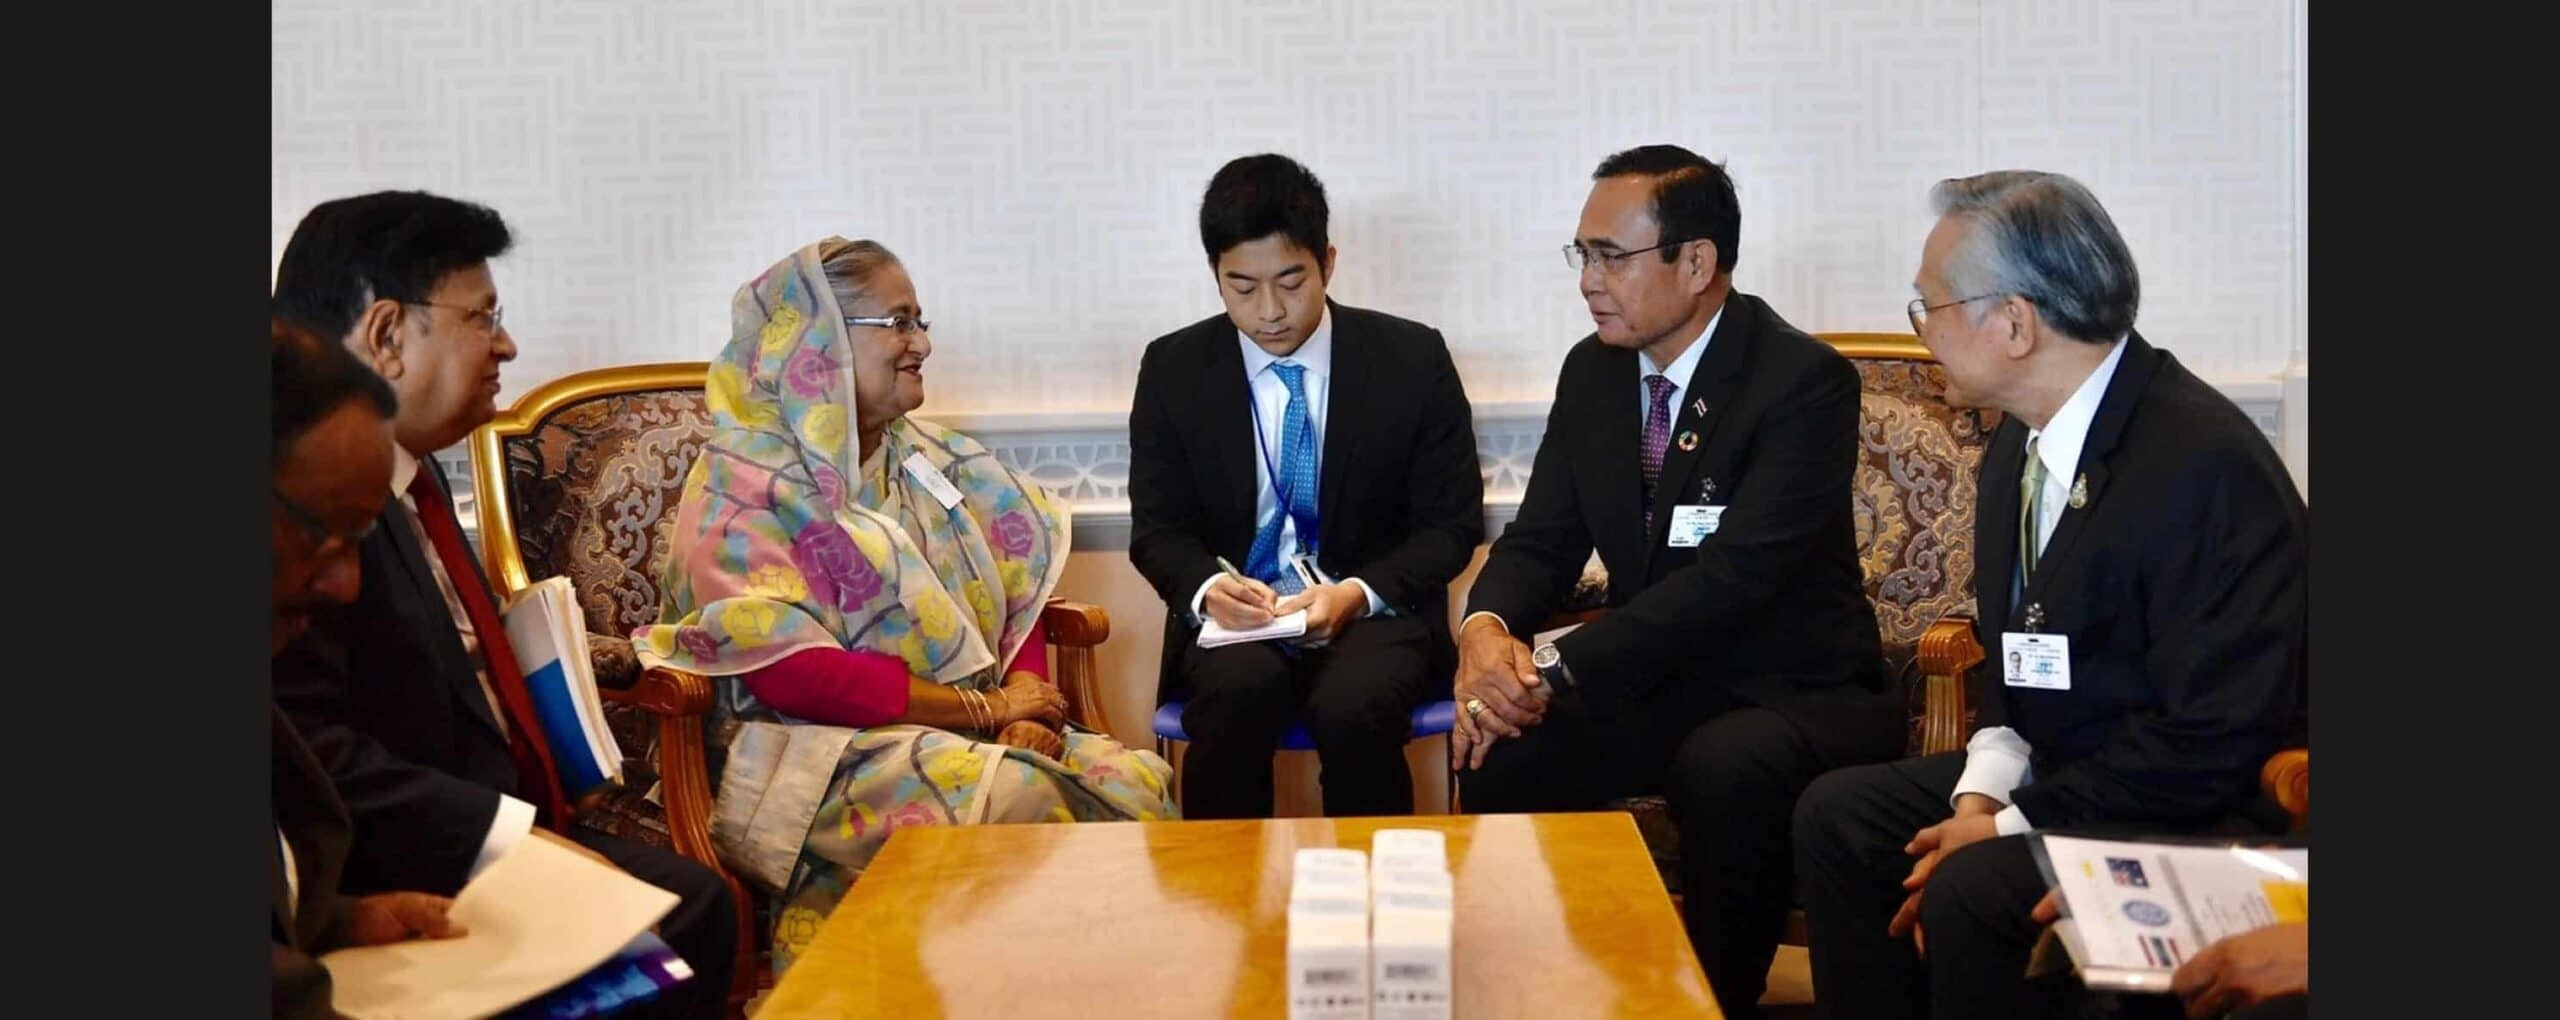 Thailand Prime Minister  met with H.E. Sheikh Hasina during UNGA74 and discussed bilateral relations especially on trade and investment, cooperation in BIMSTEC and ASEAN, and the Rohingya issue (25 Sept 19)